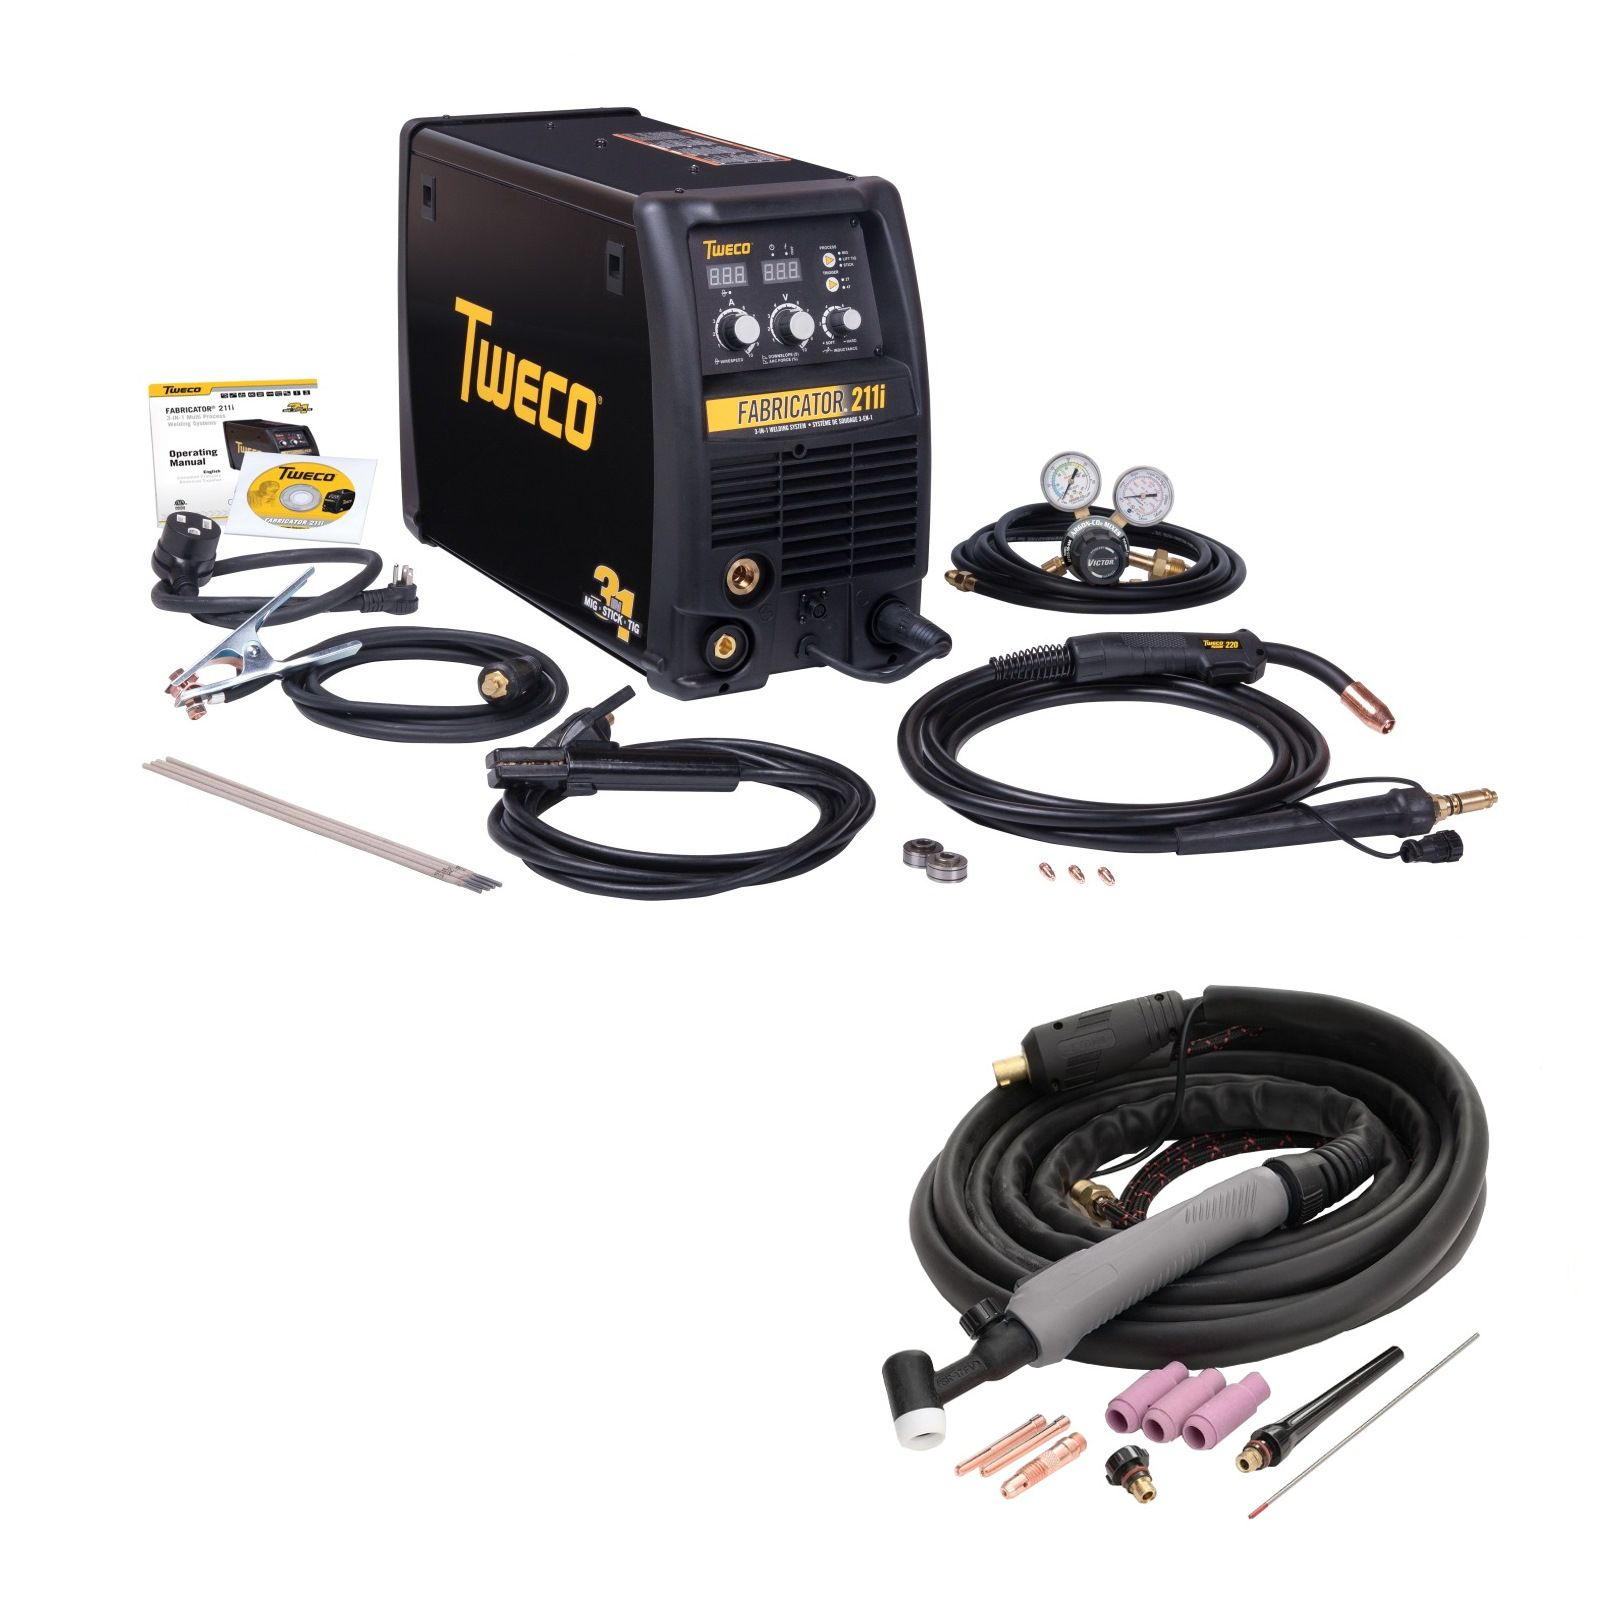 Tweco Fabricator 211i MIG, TIG, Stick Welder Pkg with TIG Torch (W1004201, W4014603)